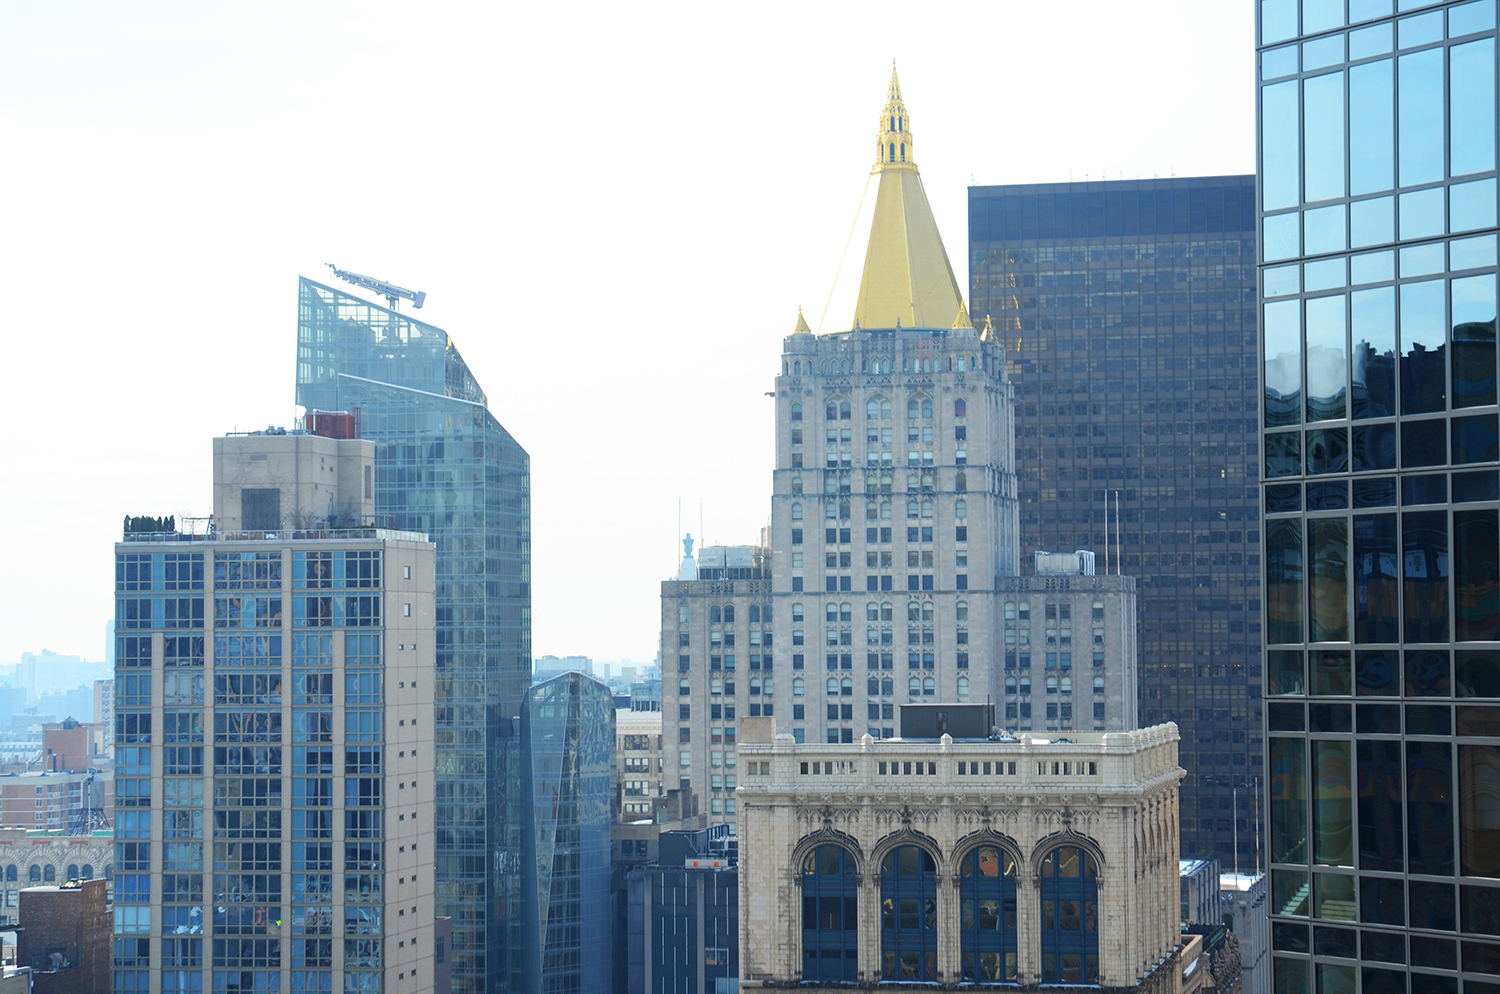 The New York Life Building as seen from 172 Madison Avenue.